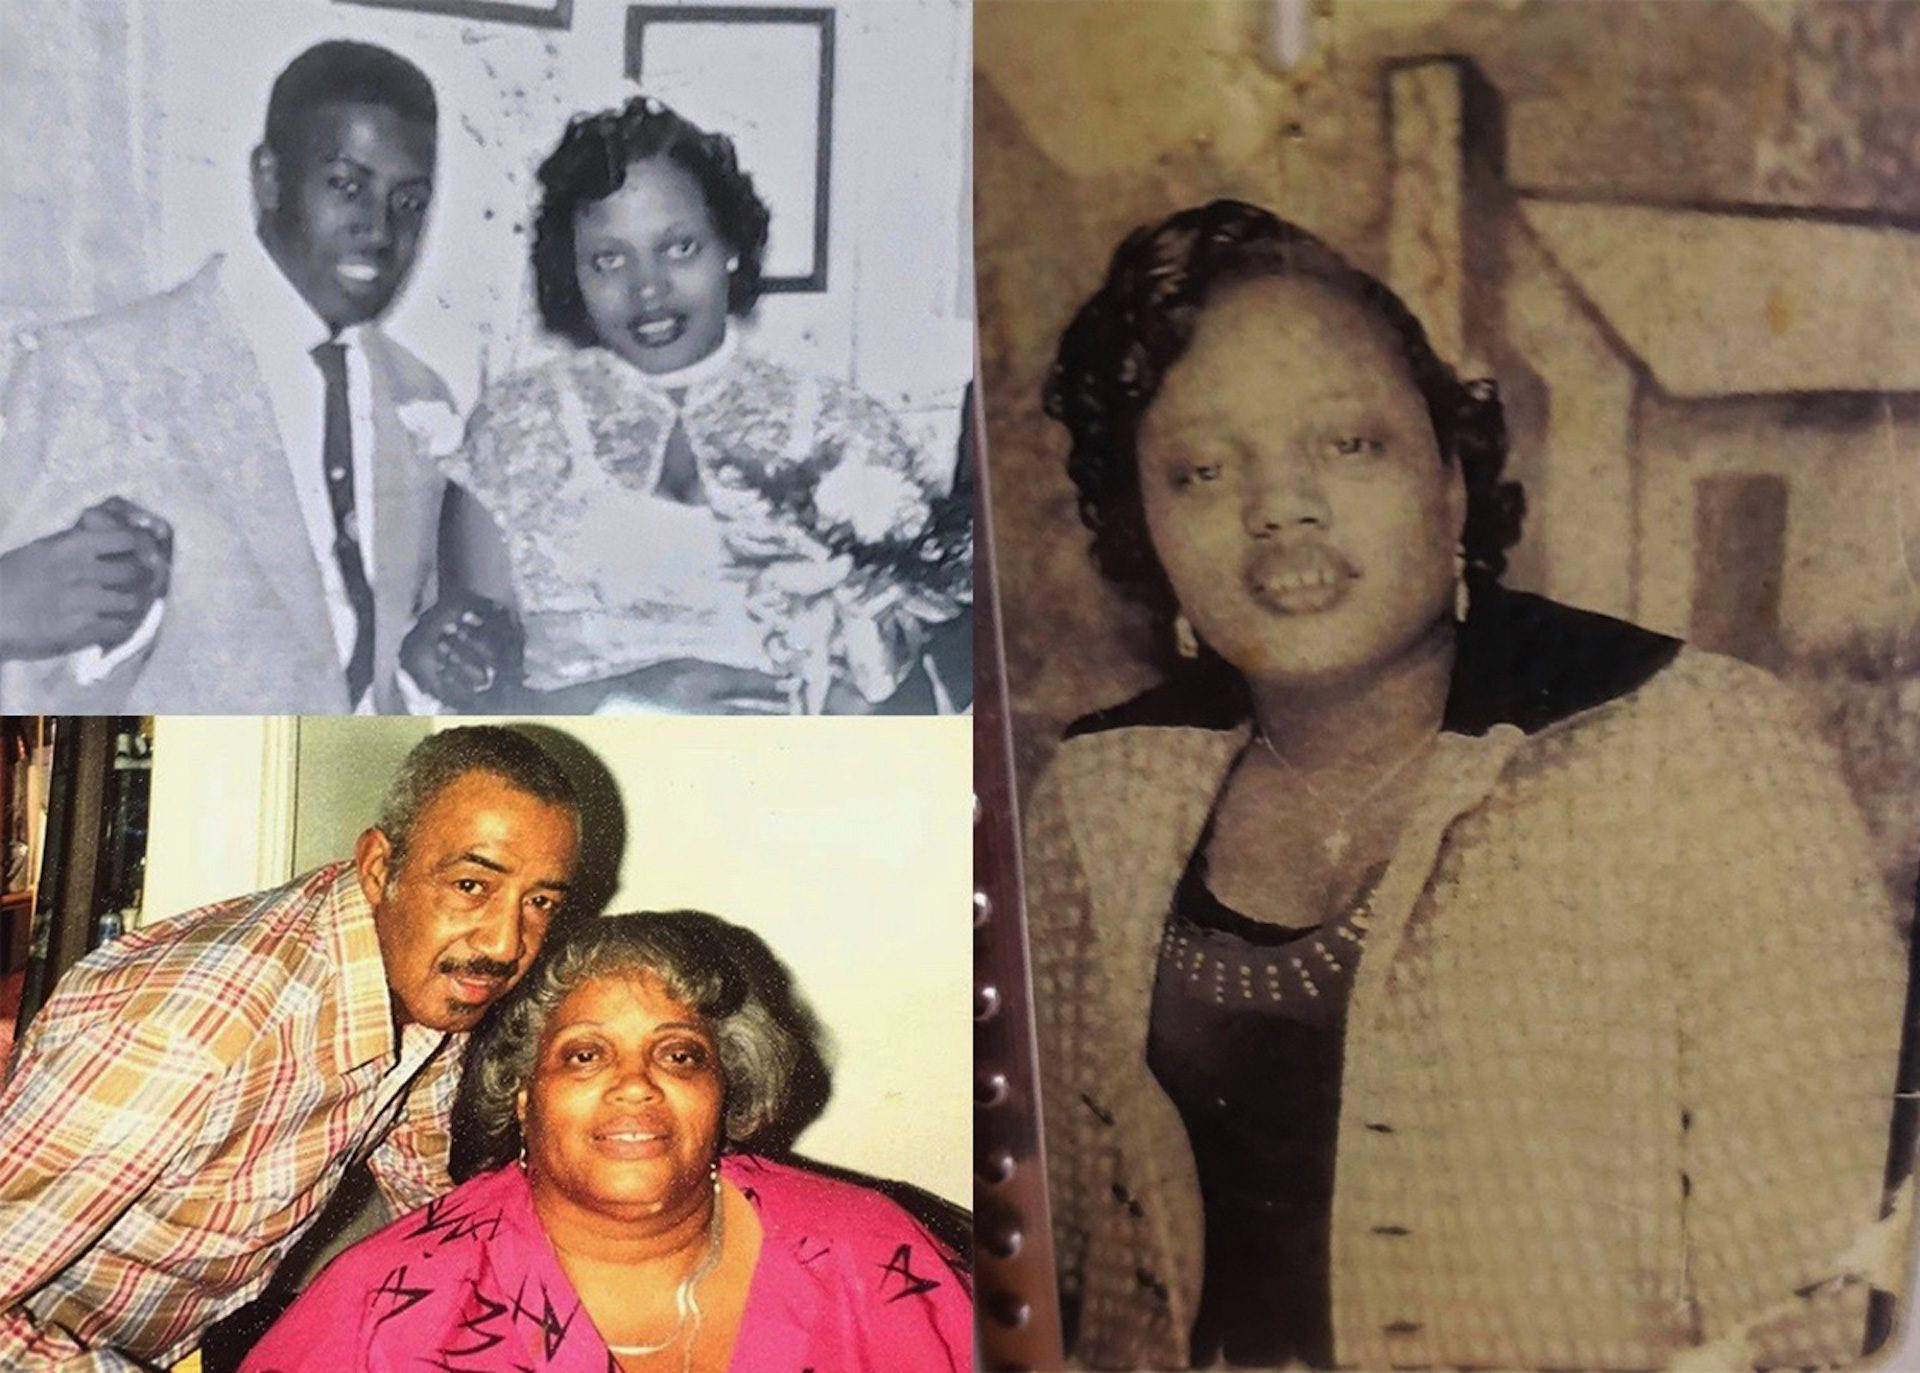 Ida (right, at 18 years old) was born in Martinsville, Va., and moved to Philadelphia when she was 3 years old. She married Johnny Robinson in November of 1956 (top left) and they raised six children. Johnny (pictured bottom left in 1989) died in 1997.